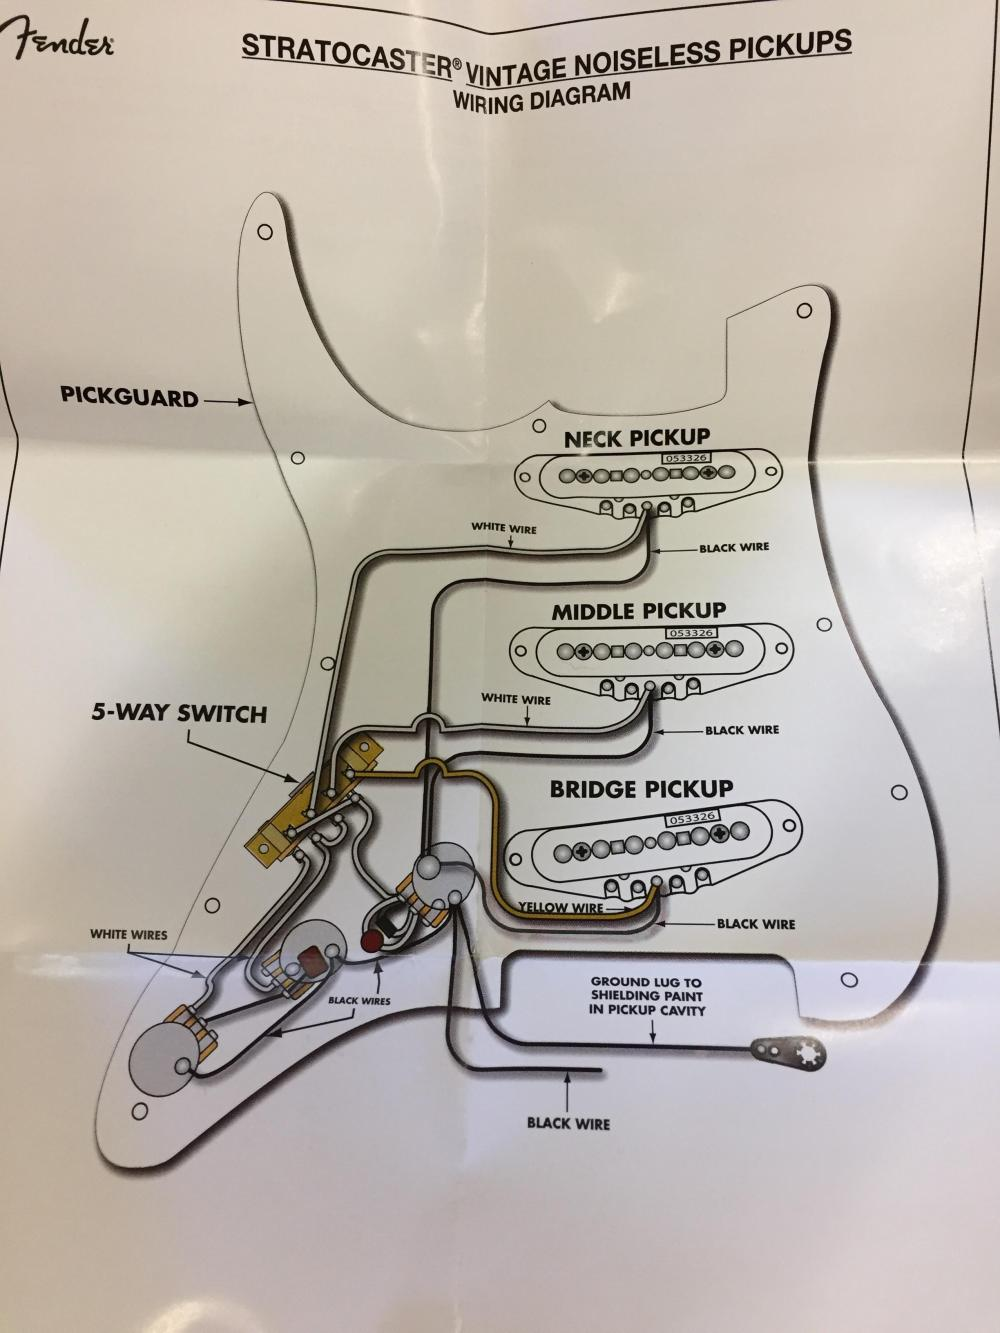 medium resolution of fender pickup wiring diagram wiring diagram document guide fender lead ii wiring diagram fender vintage noiseless